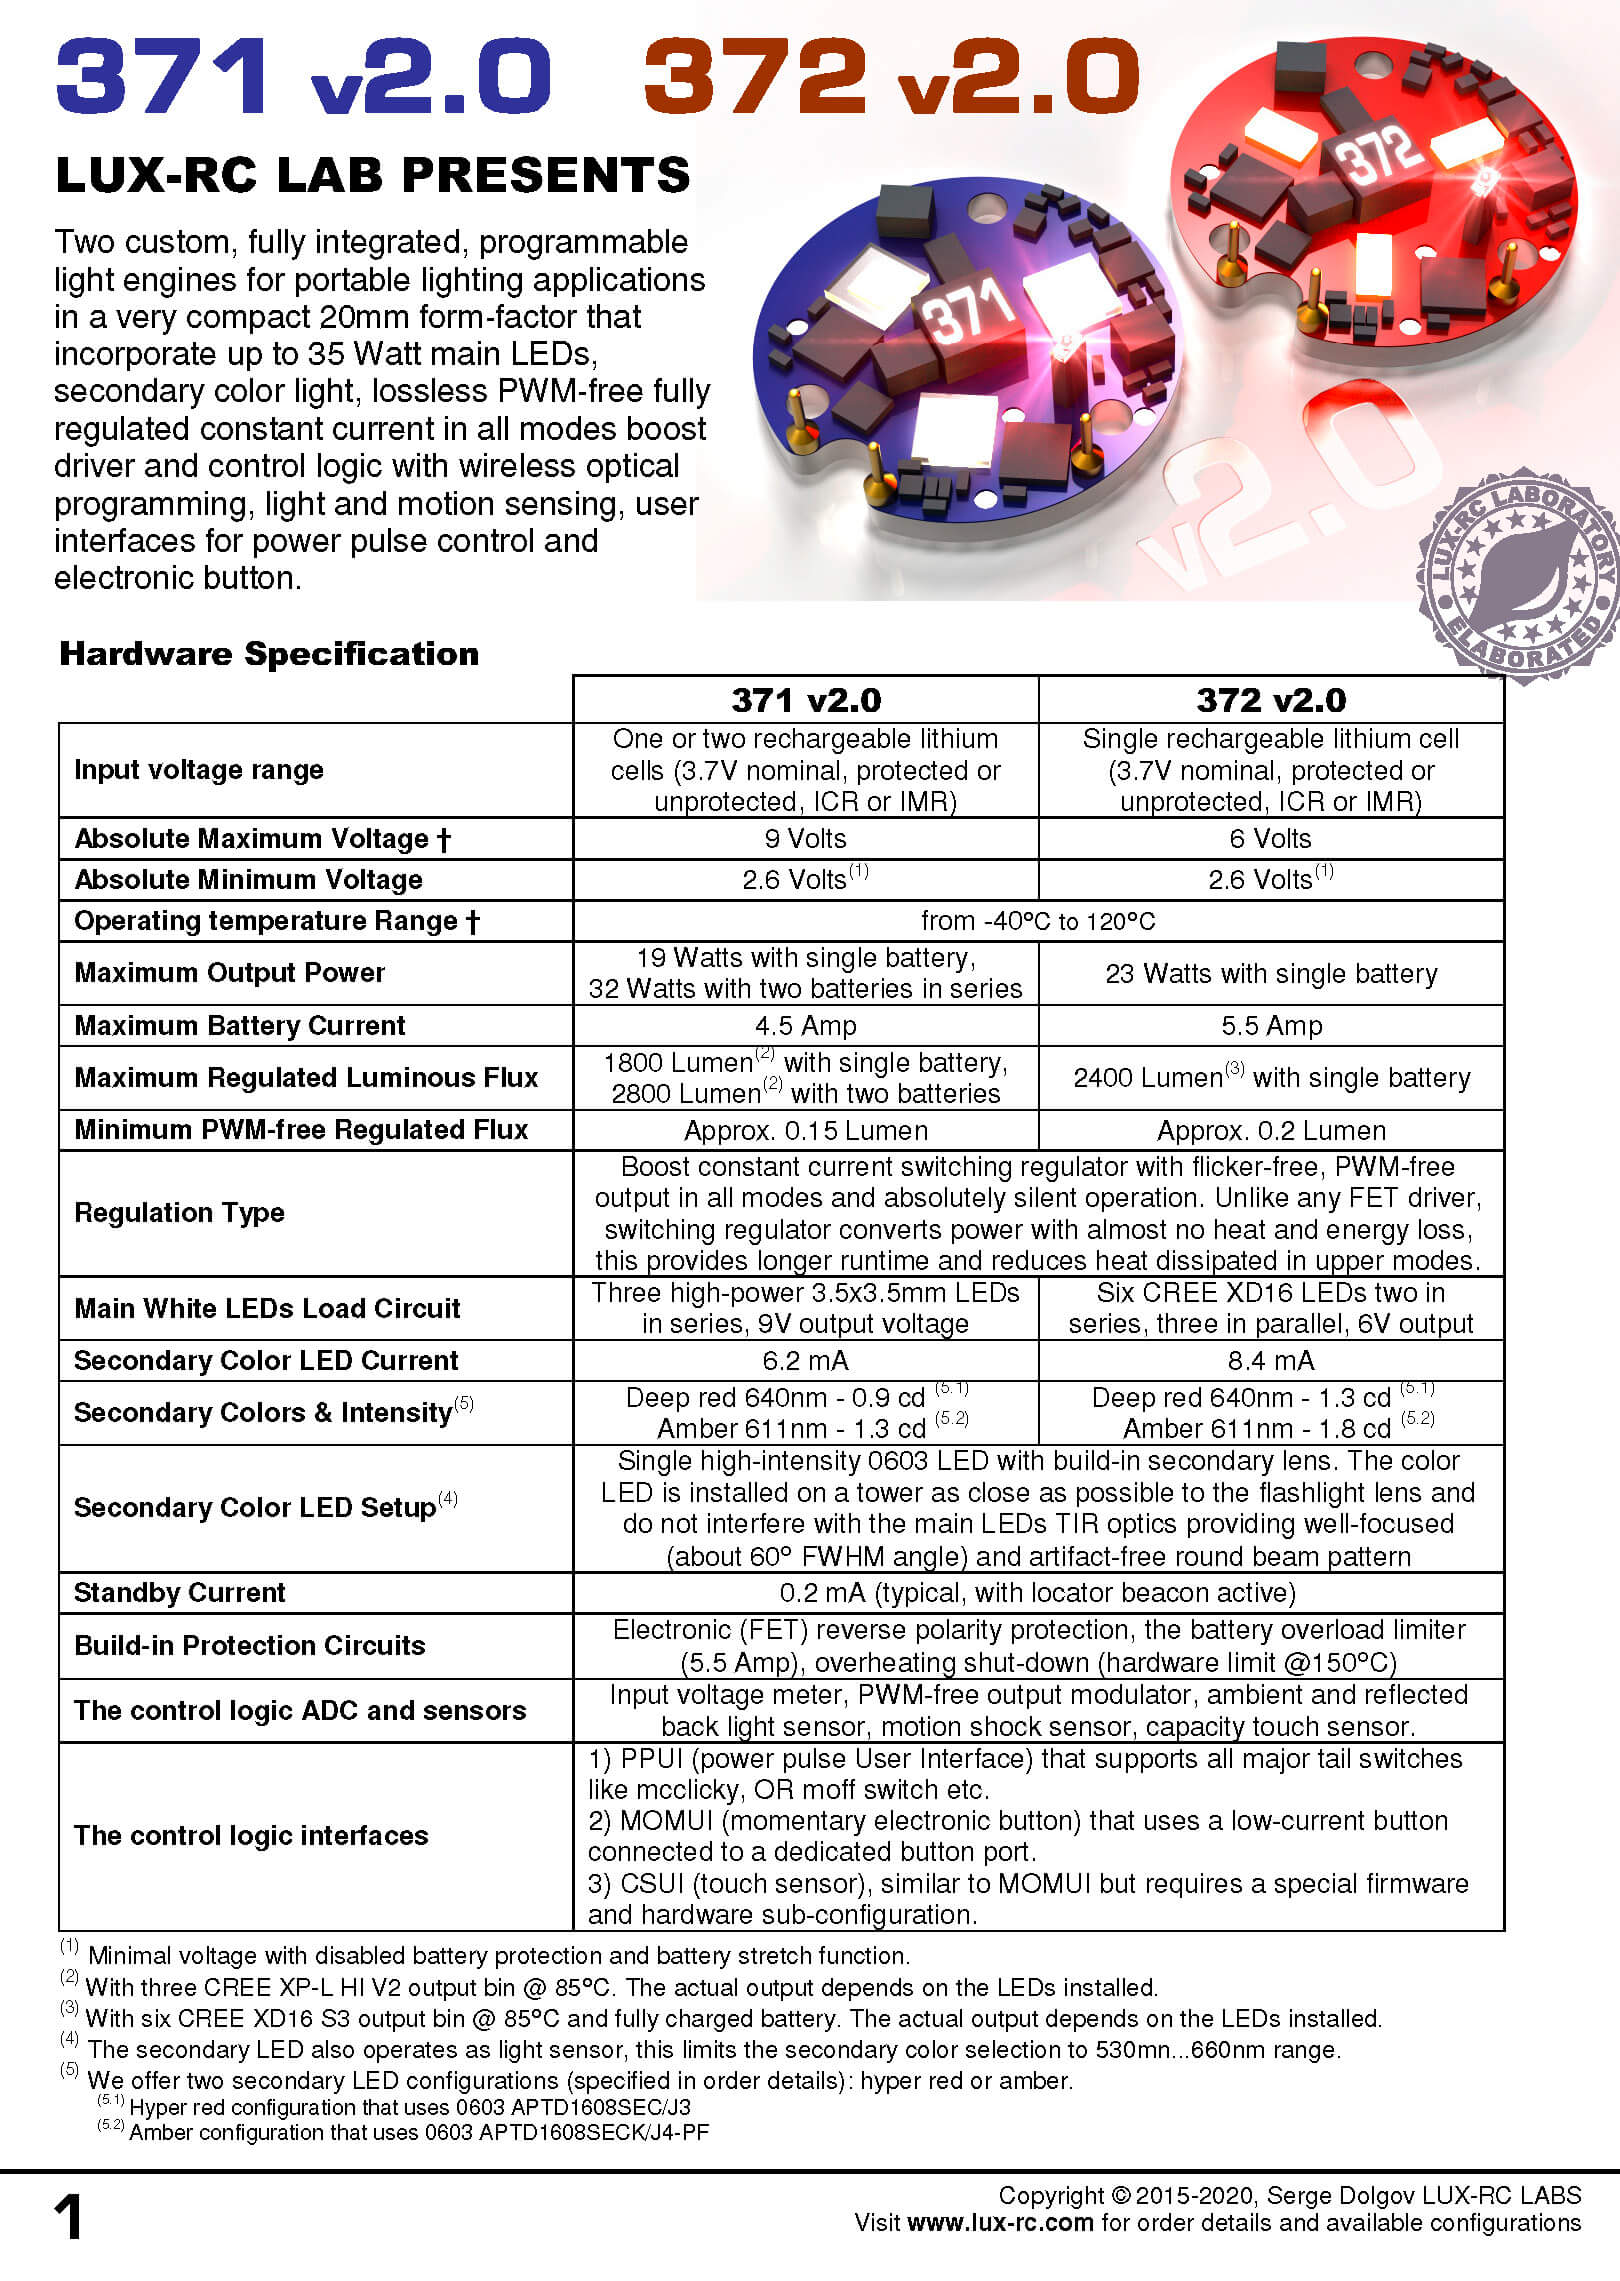 lux-rc 371d v2.0 manual in image format page 1